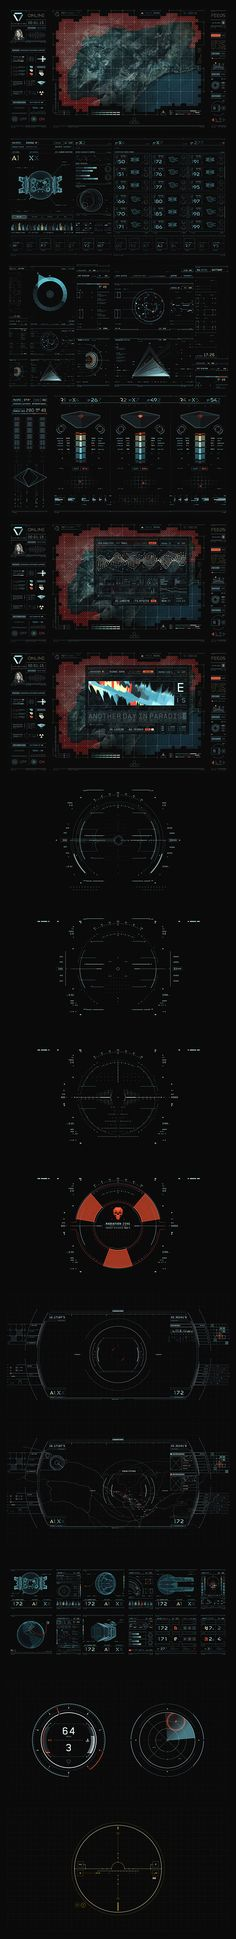 #Oblivion #UI by Gina de Villiers Munk and Jake Seargeant